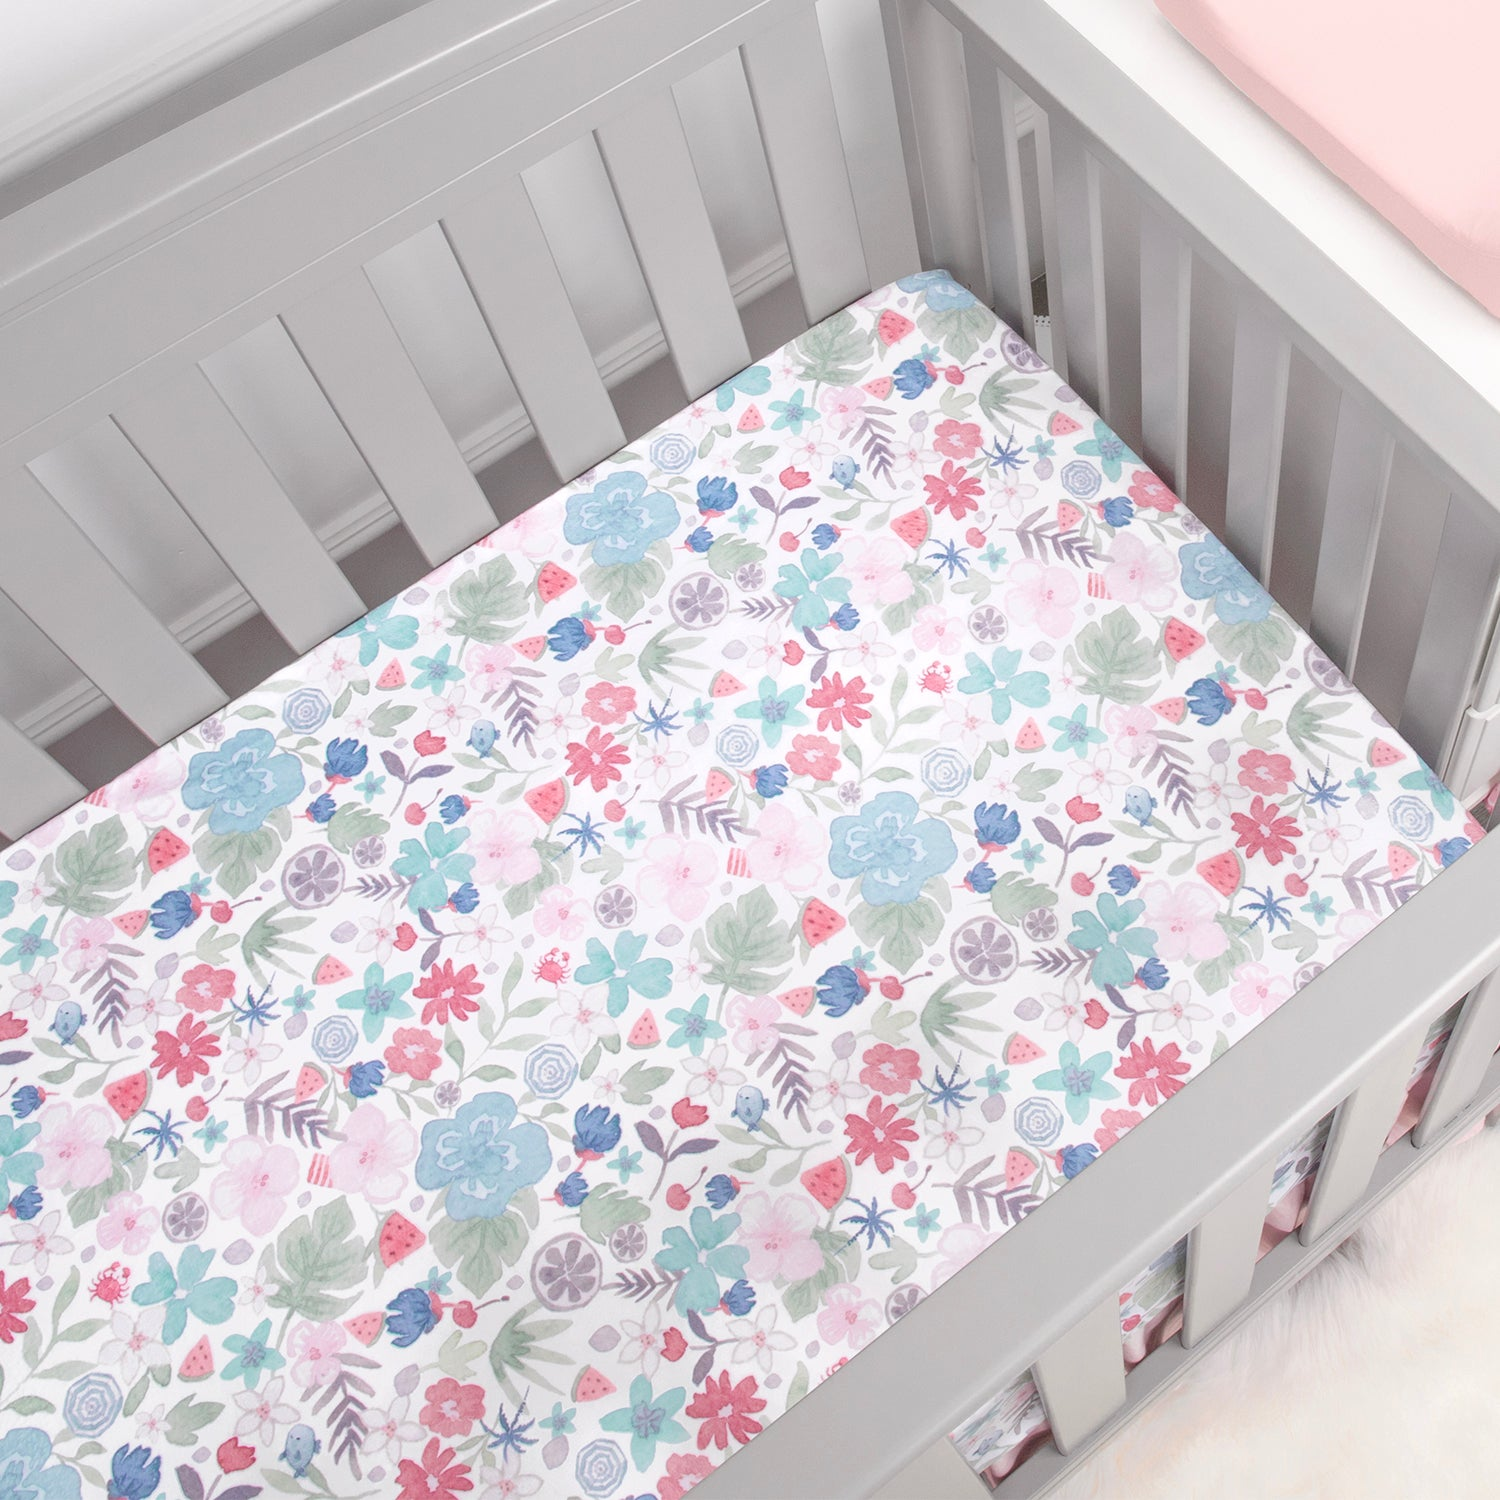 OUT OF STOCK - Luxury Microfleece Crib Sheet - Multicolored